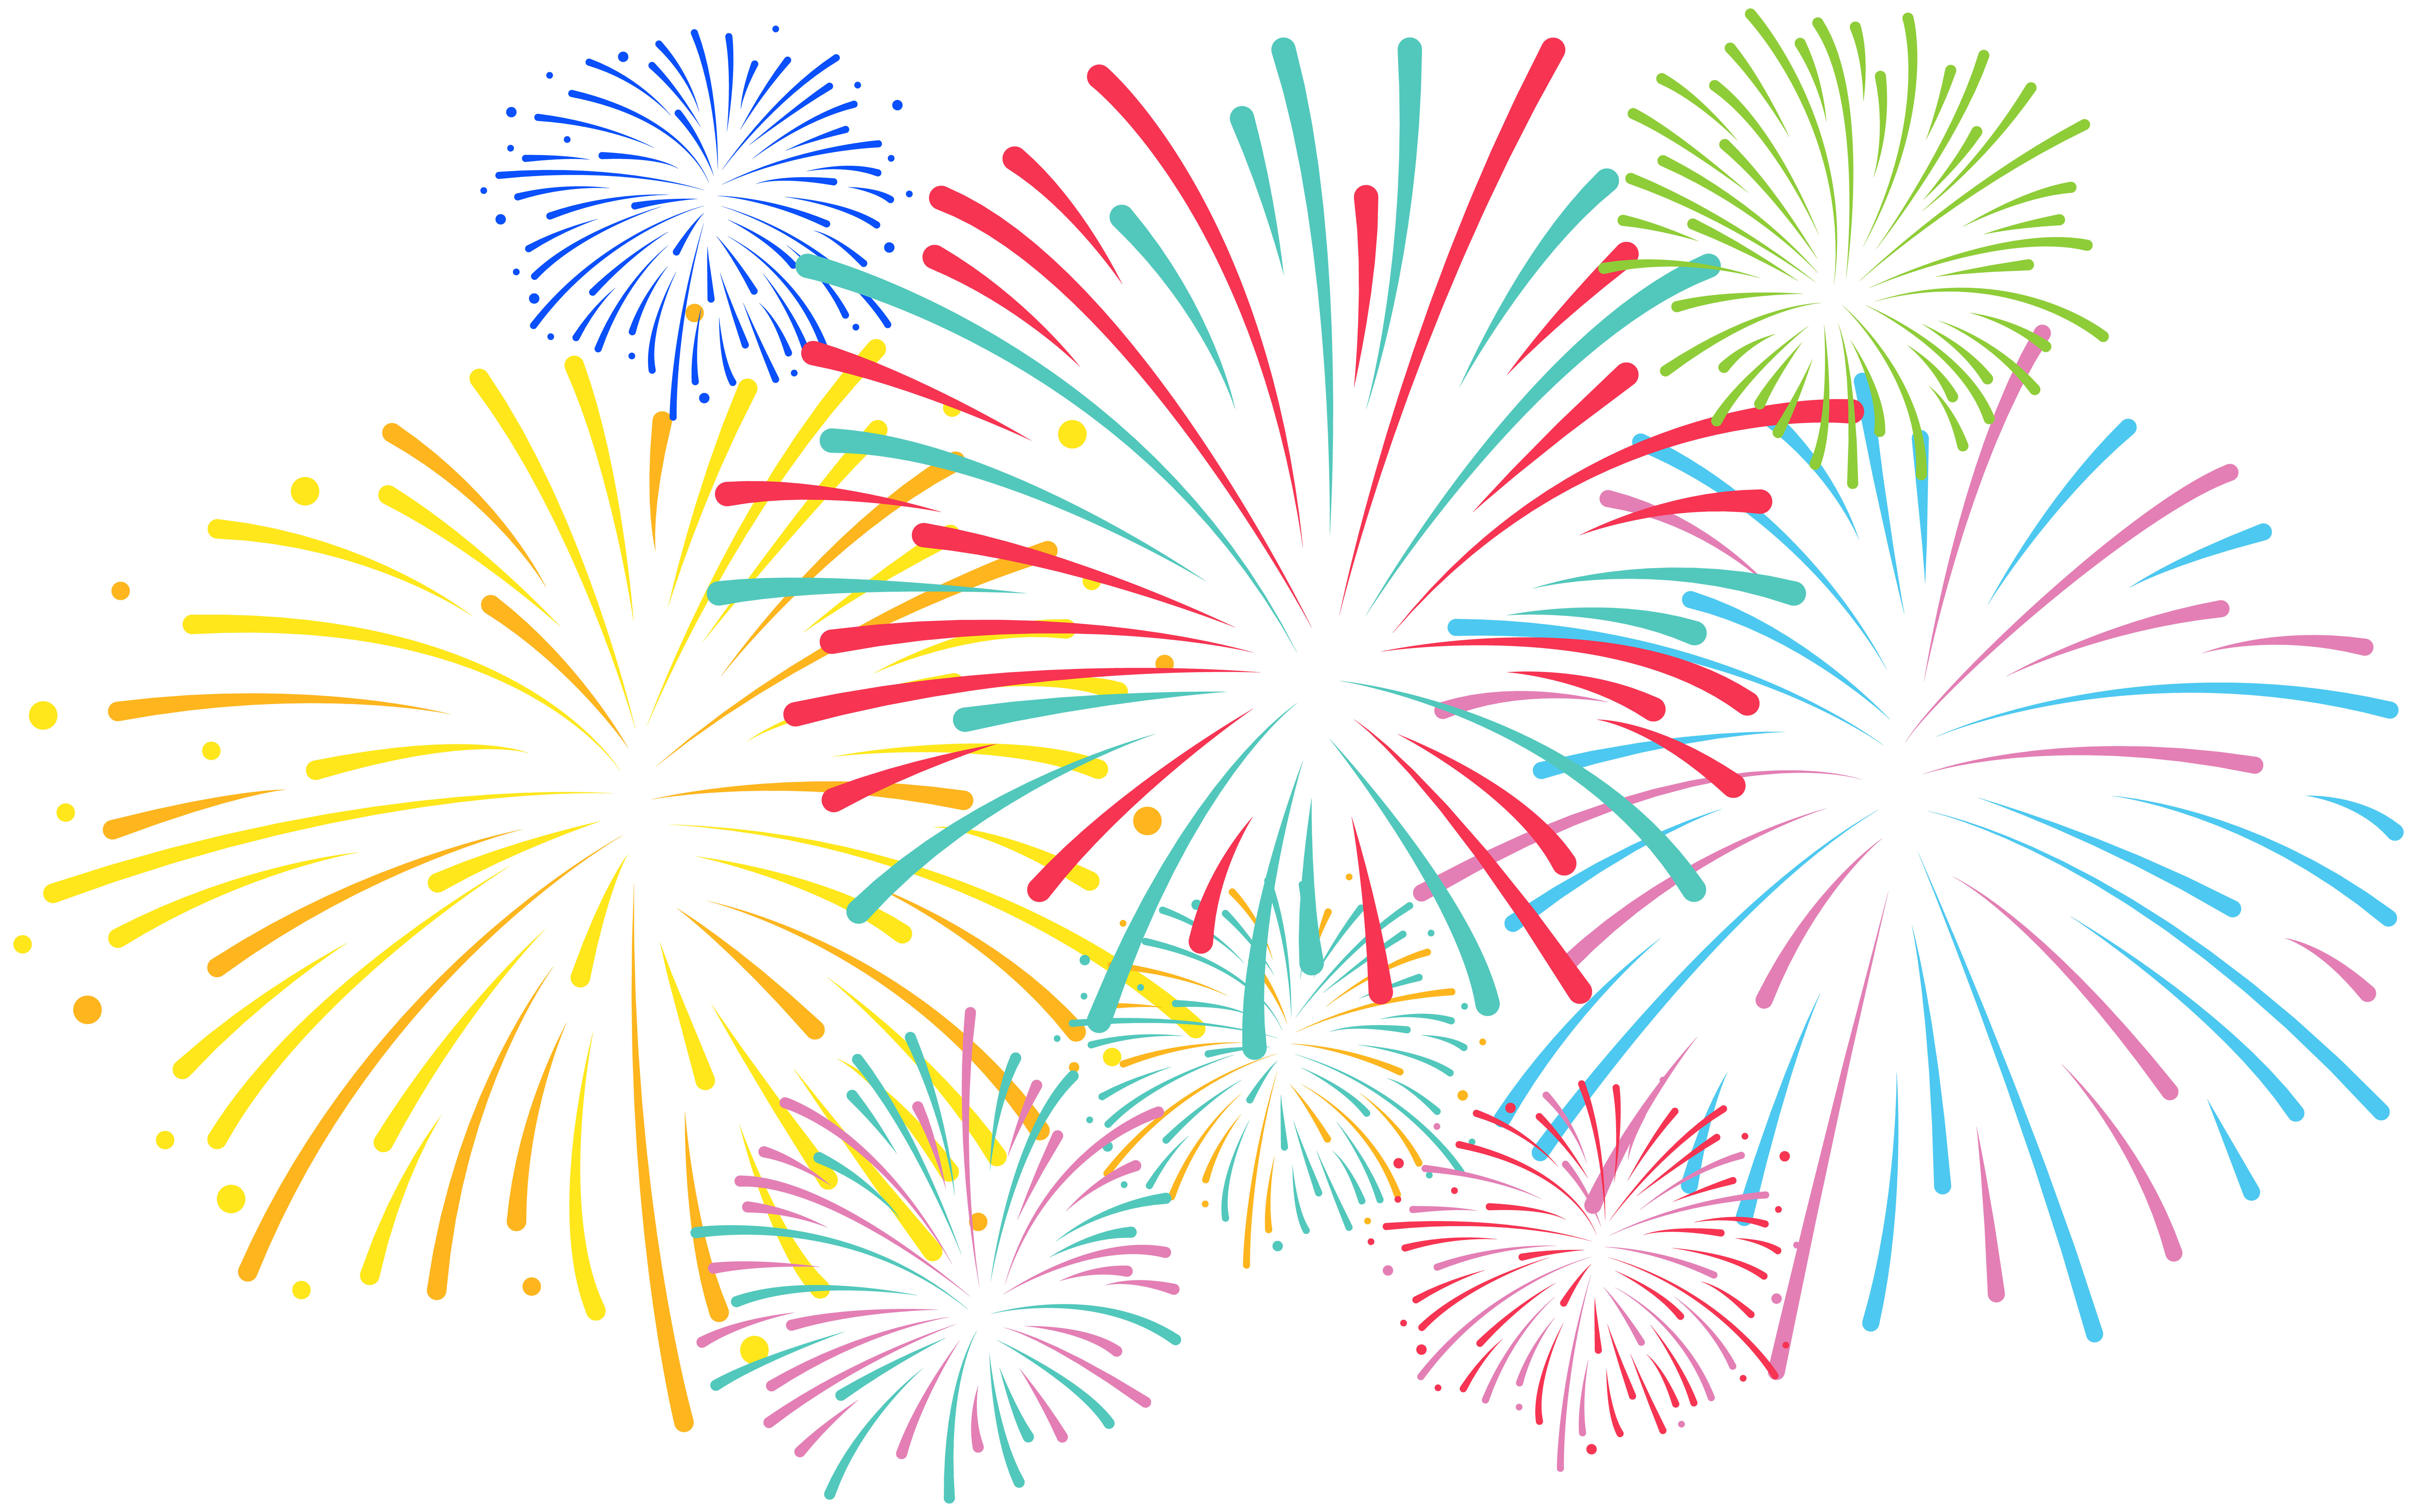 Fireworks Transparent Clip Art Gallery Yopriceville High Quality Images And Transparent Png Free Clipart